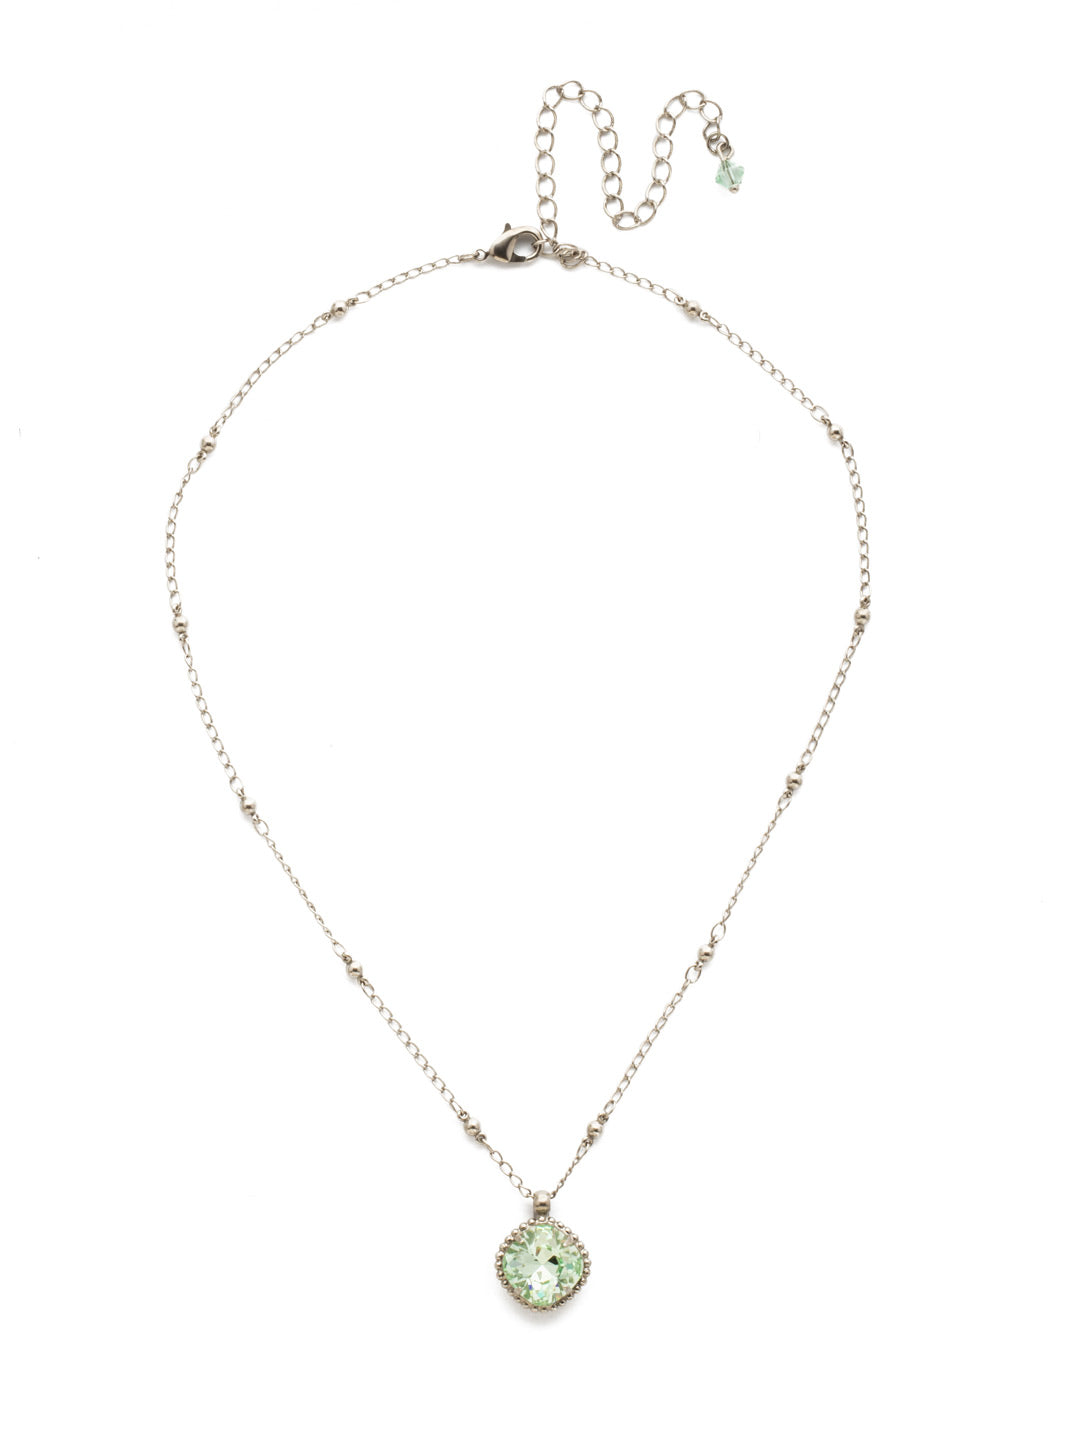 Cushion-Cut Pendant Necklace - NDS50ASMIN